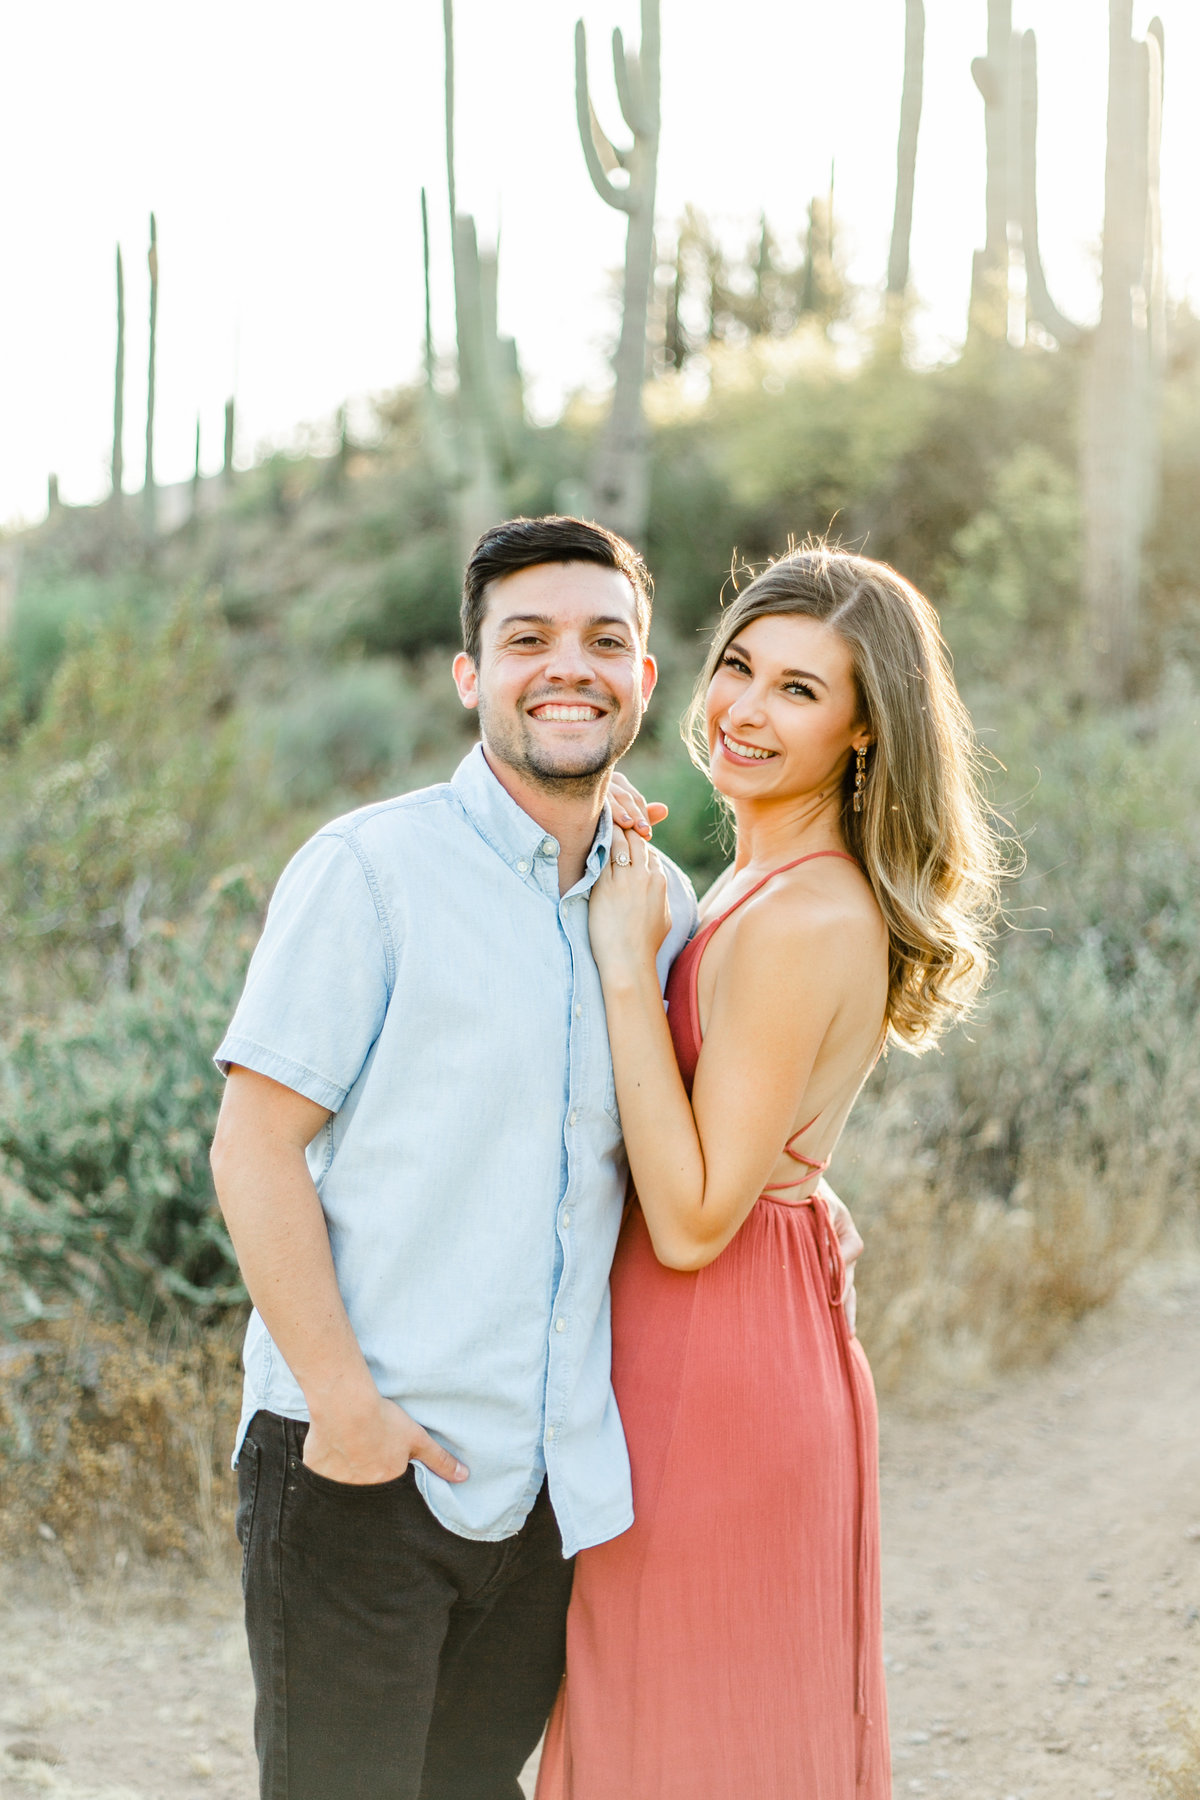 Karlie Colleen Photography - Arizona Desert Engagement - Brynne & Josh -98